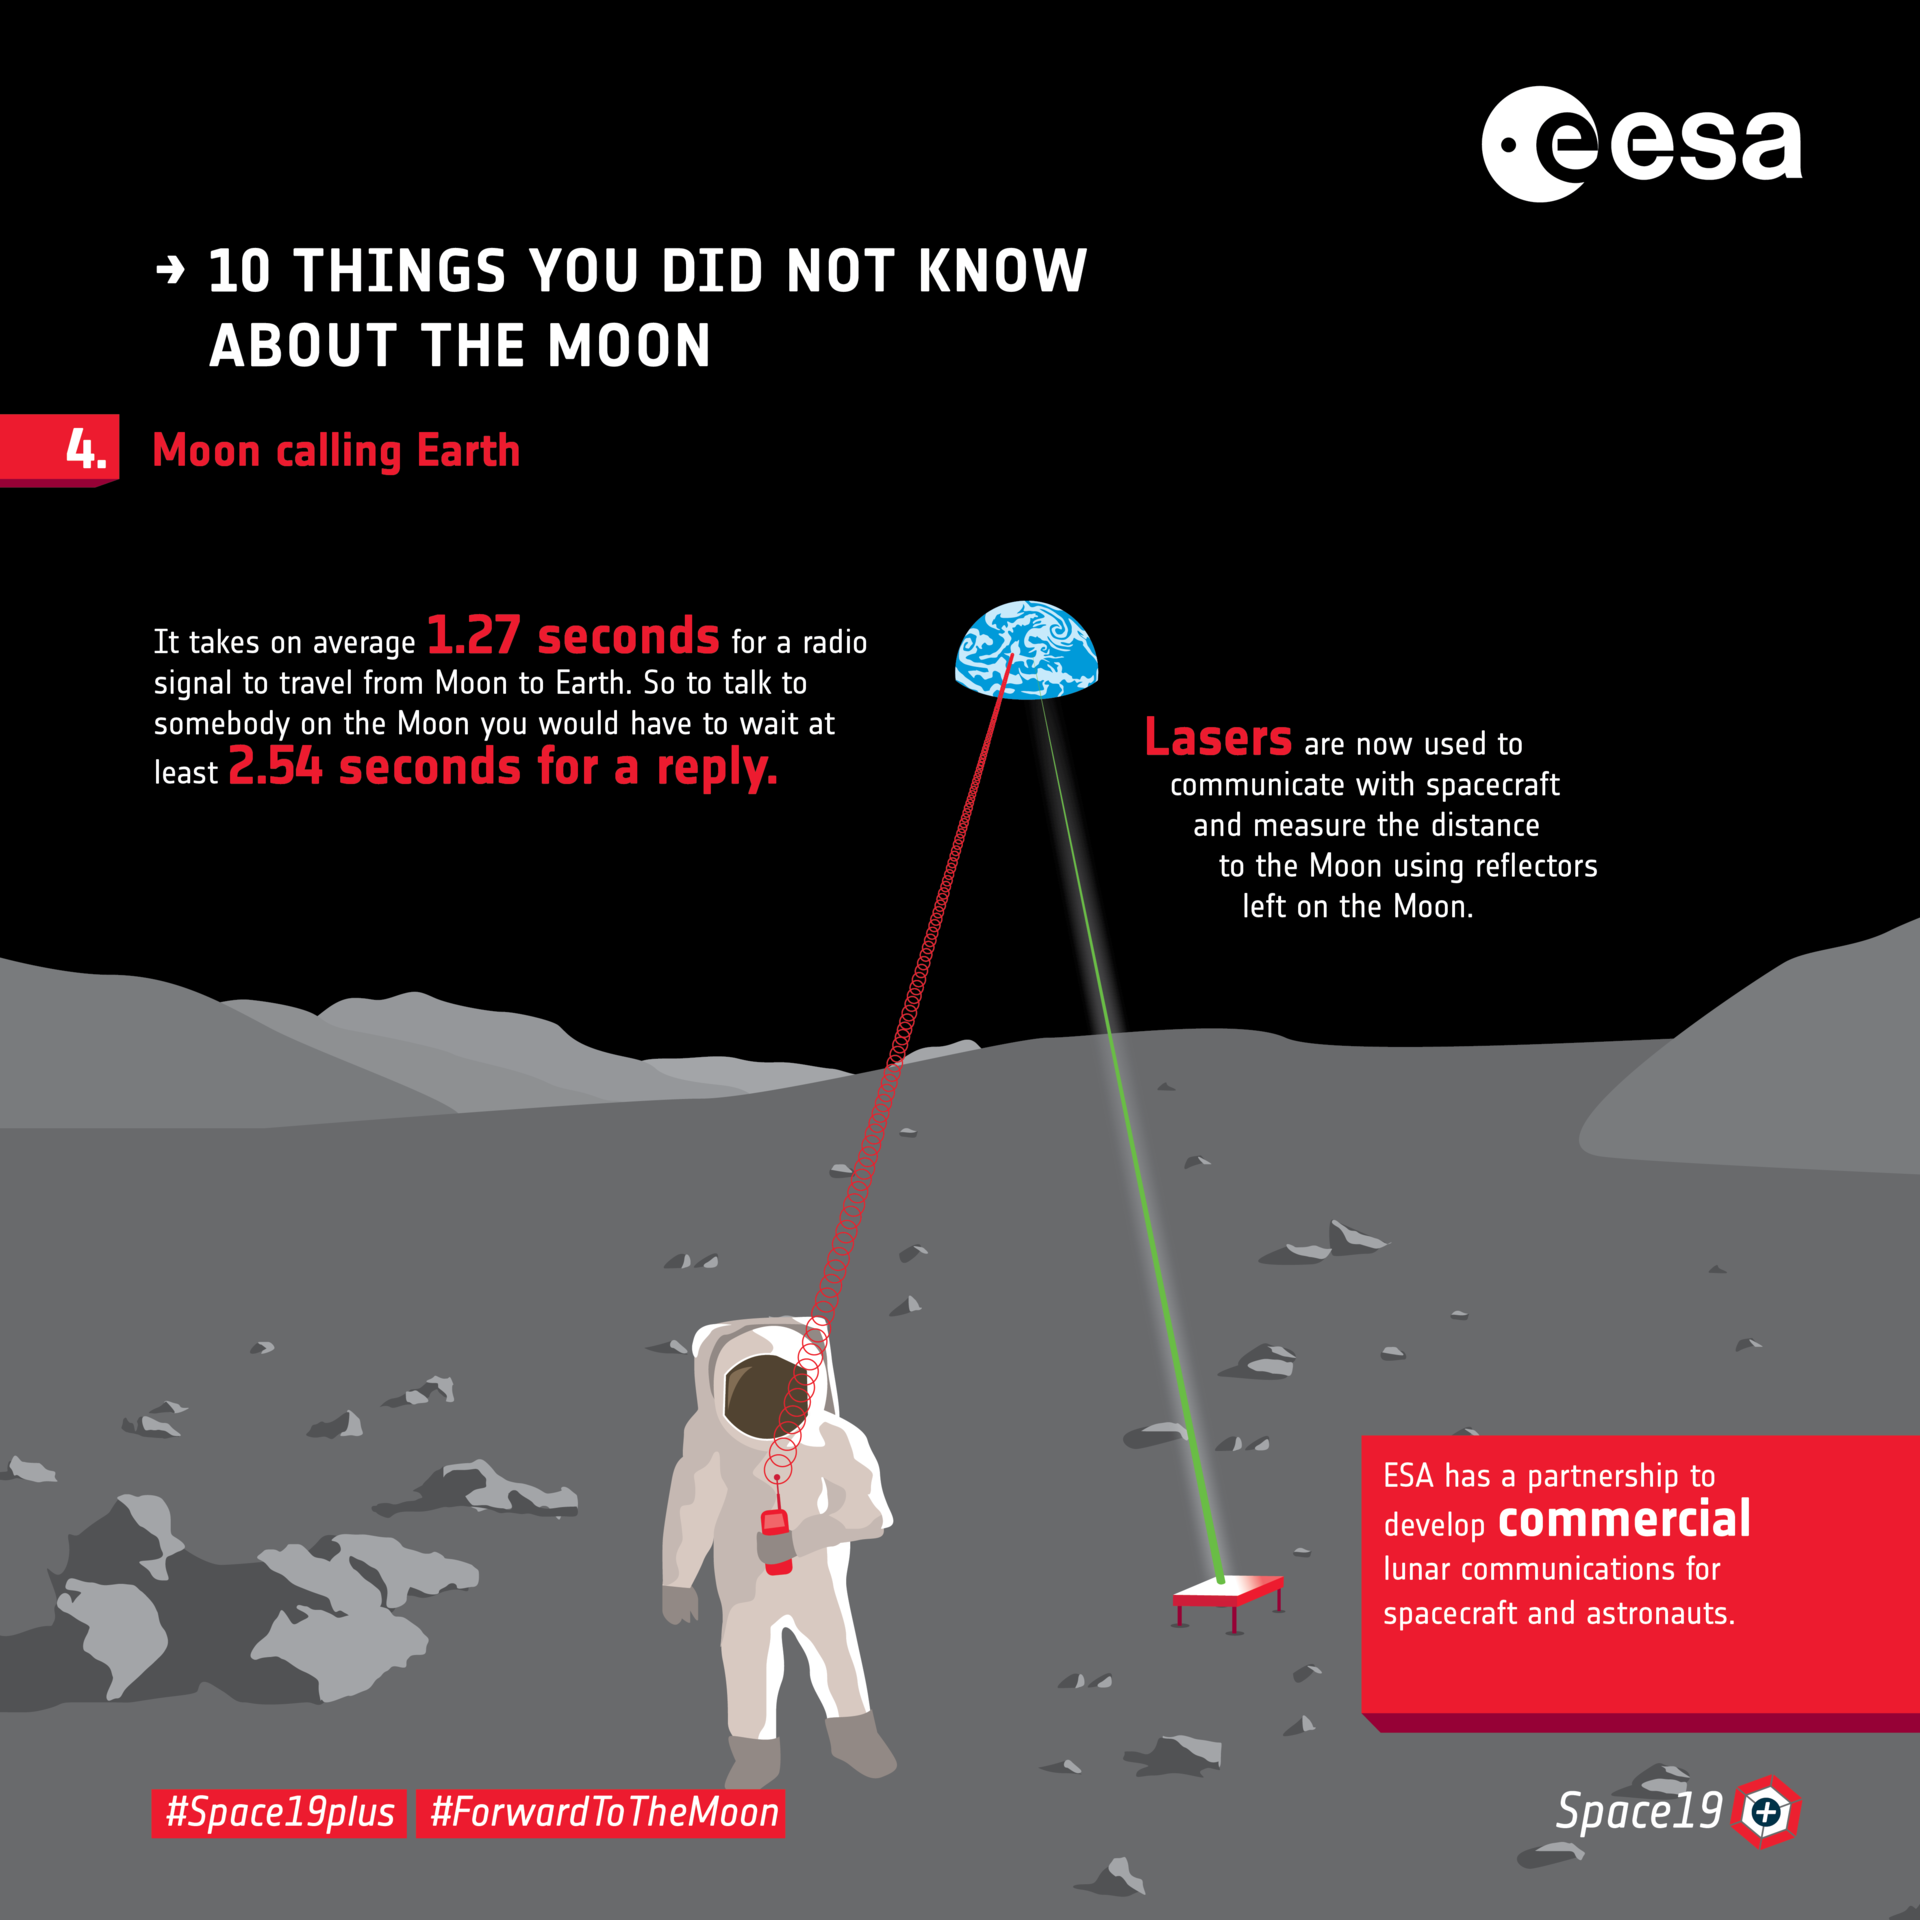 Ten things you did not know about the Moon: 4. Communications